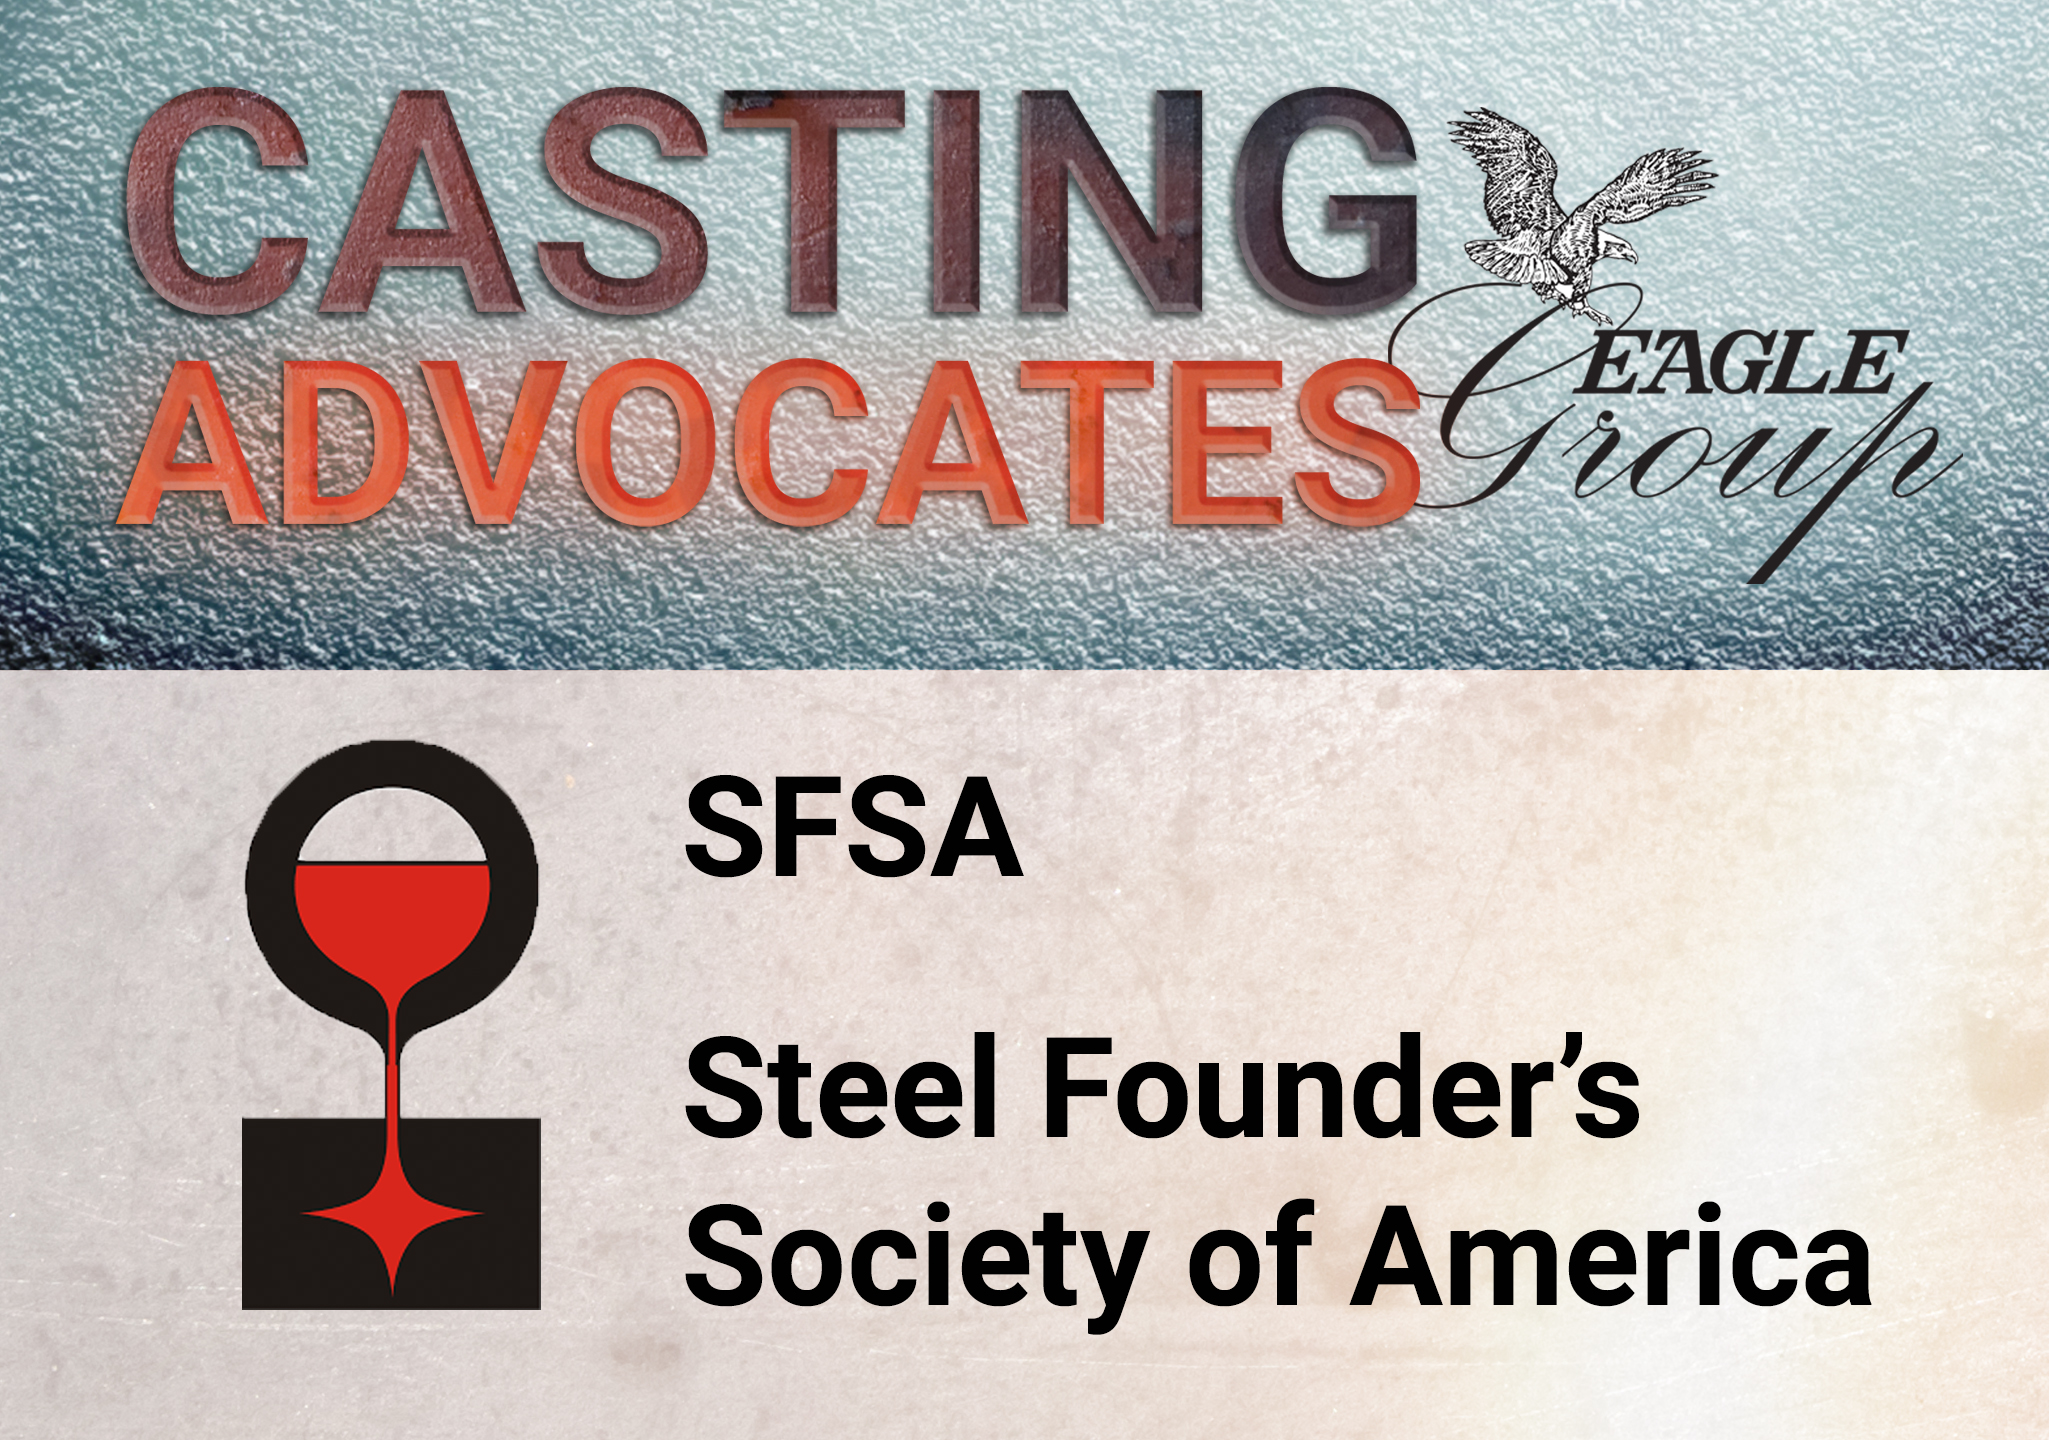 "The Eagle Group's ""Casting Advocates"": SFSA: Steel Founder's Society of America"